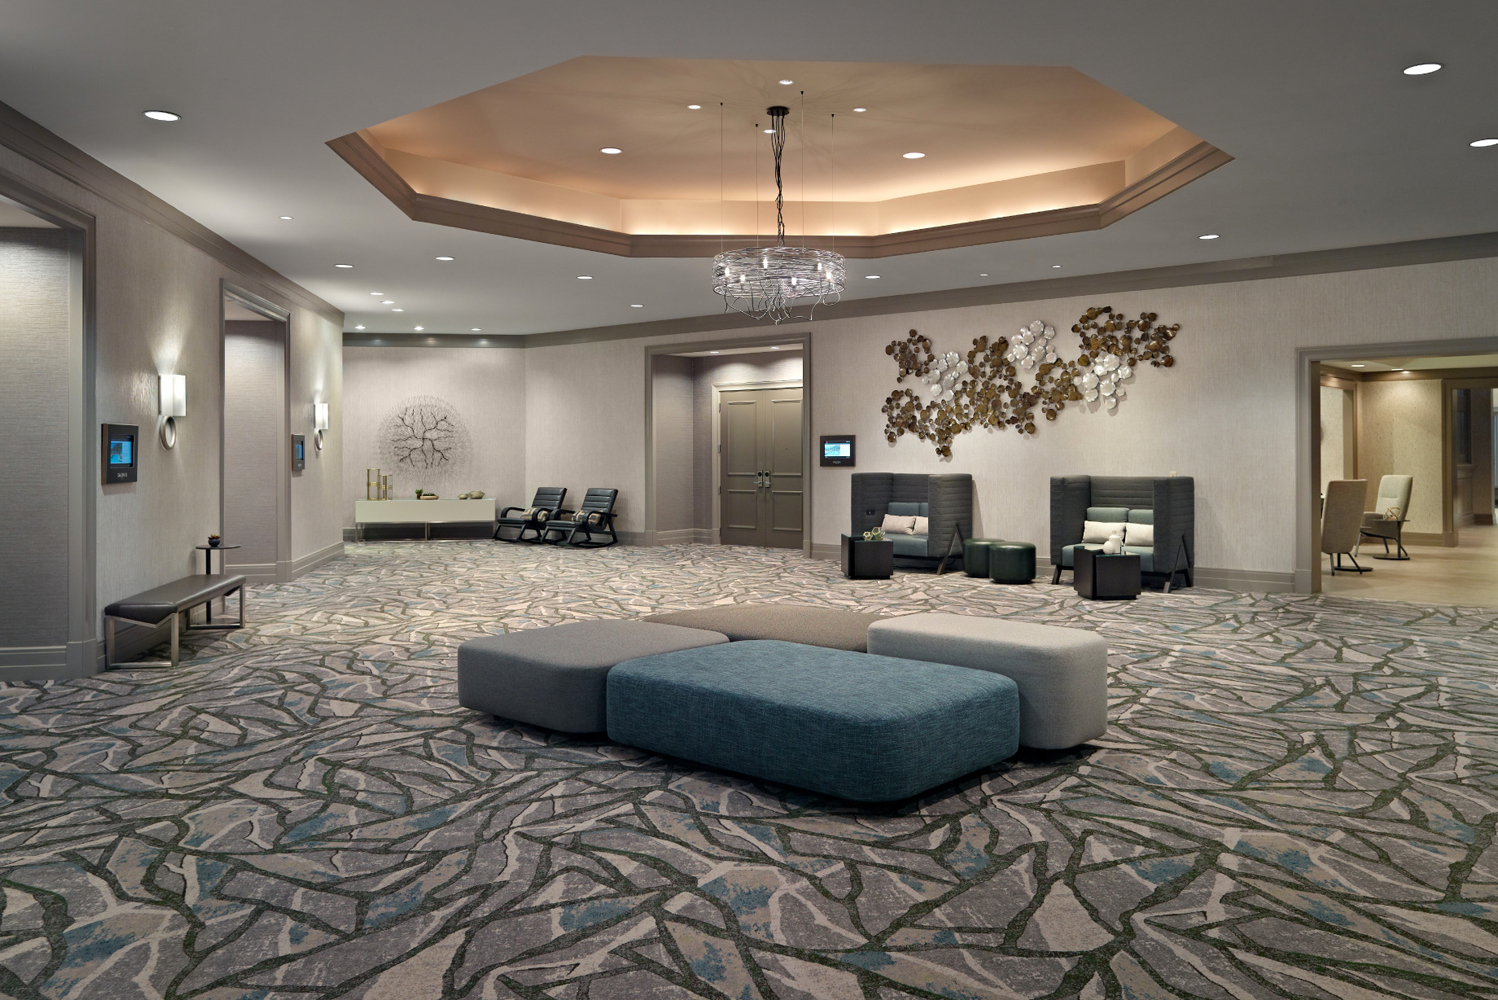 Illuminated by multi-tier custom-designed pendant chandeliers, the space has both traditional and modern elements.